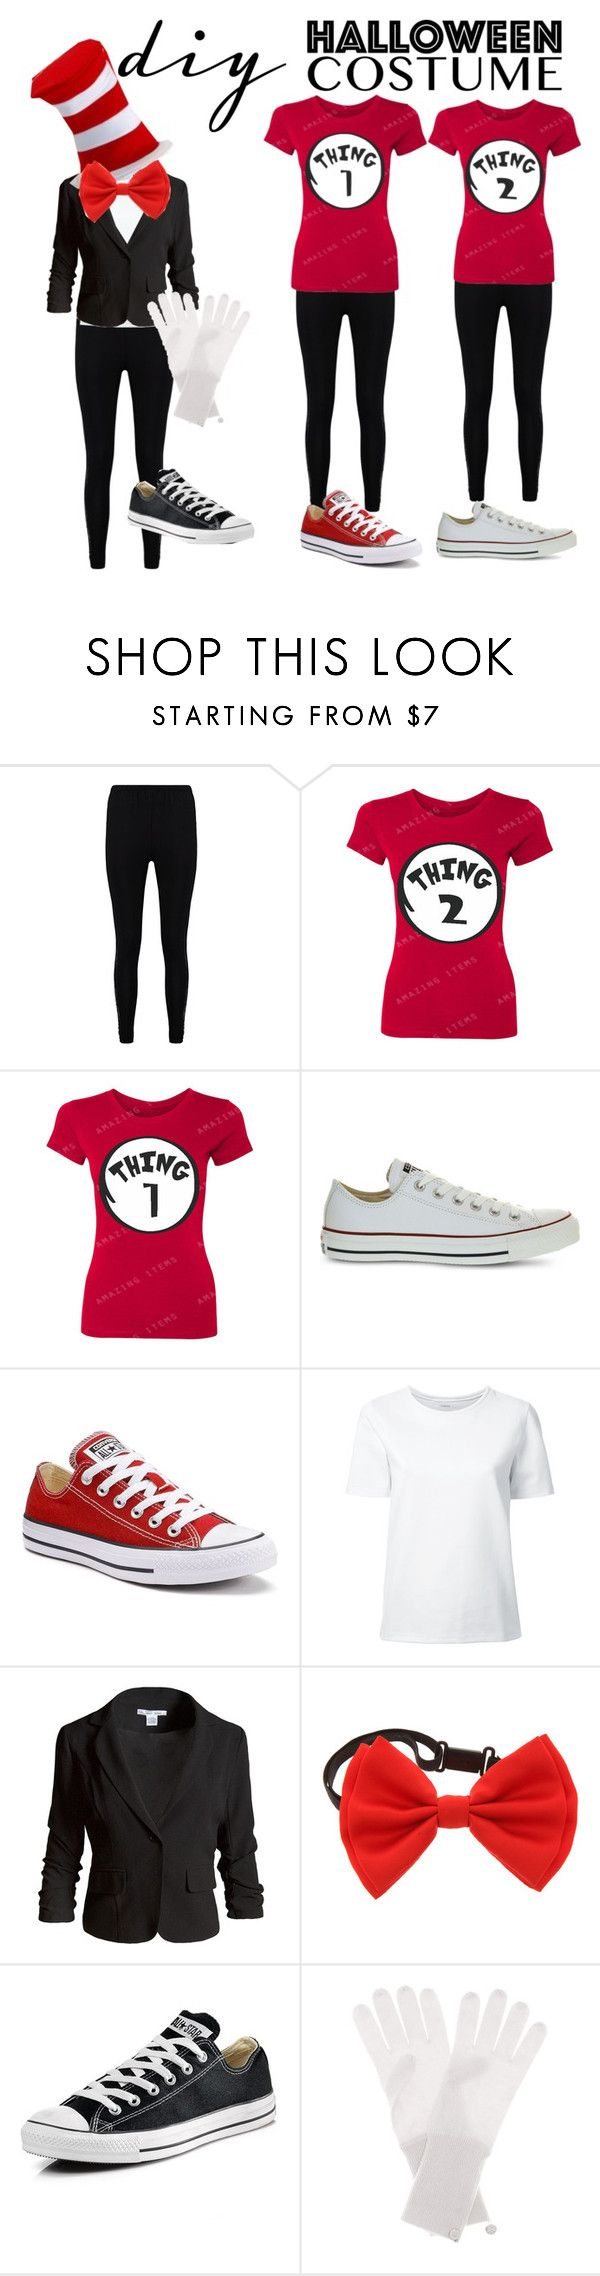 """Bff trio"" by aforehand ❤ liked on Polyvore featuring Boohoo, Converse, Lemaire, Sans Souci, Jardin des Orangers, halloweencostume and DIYHalloween"